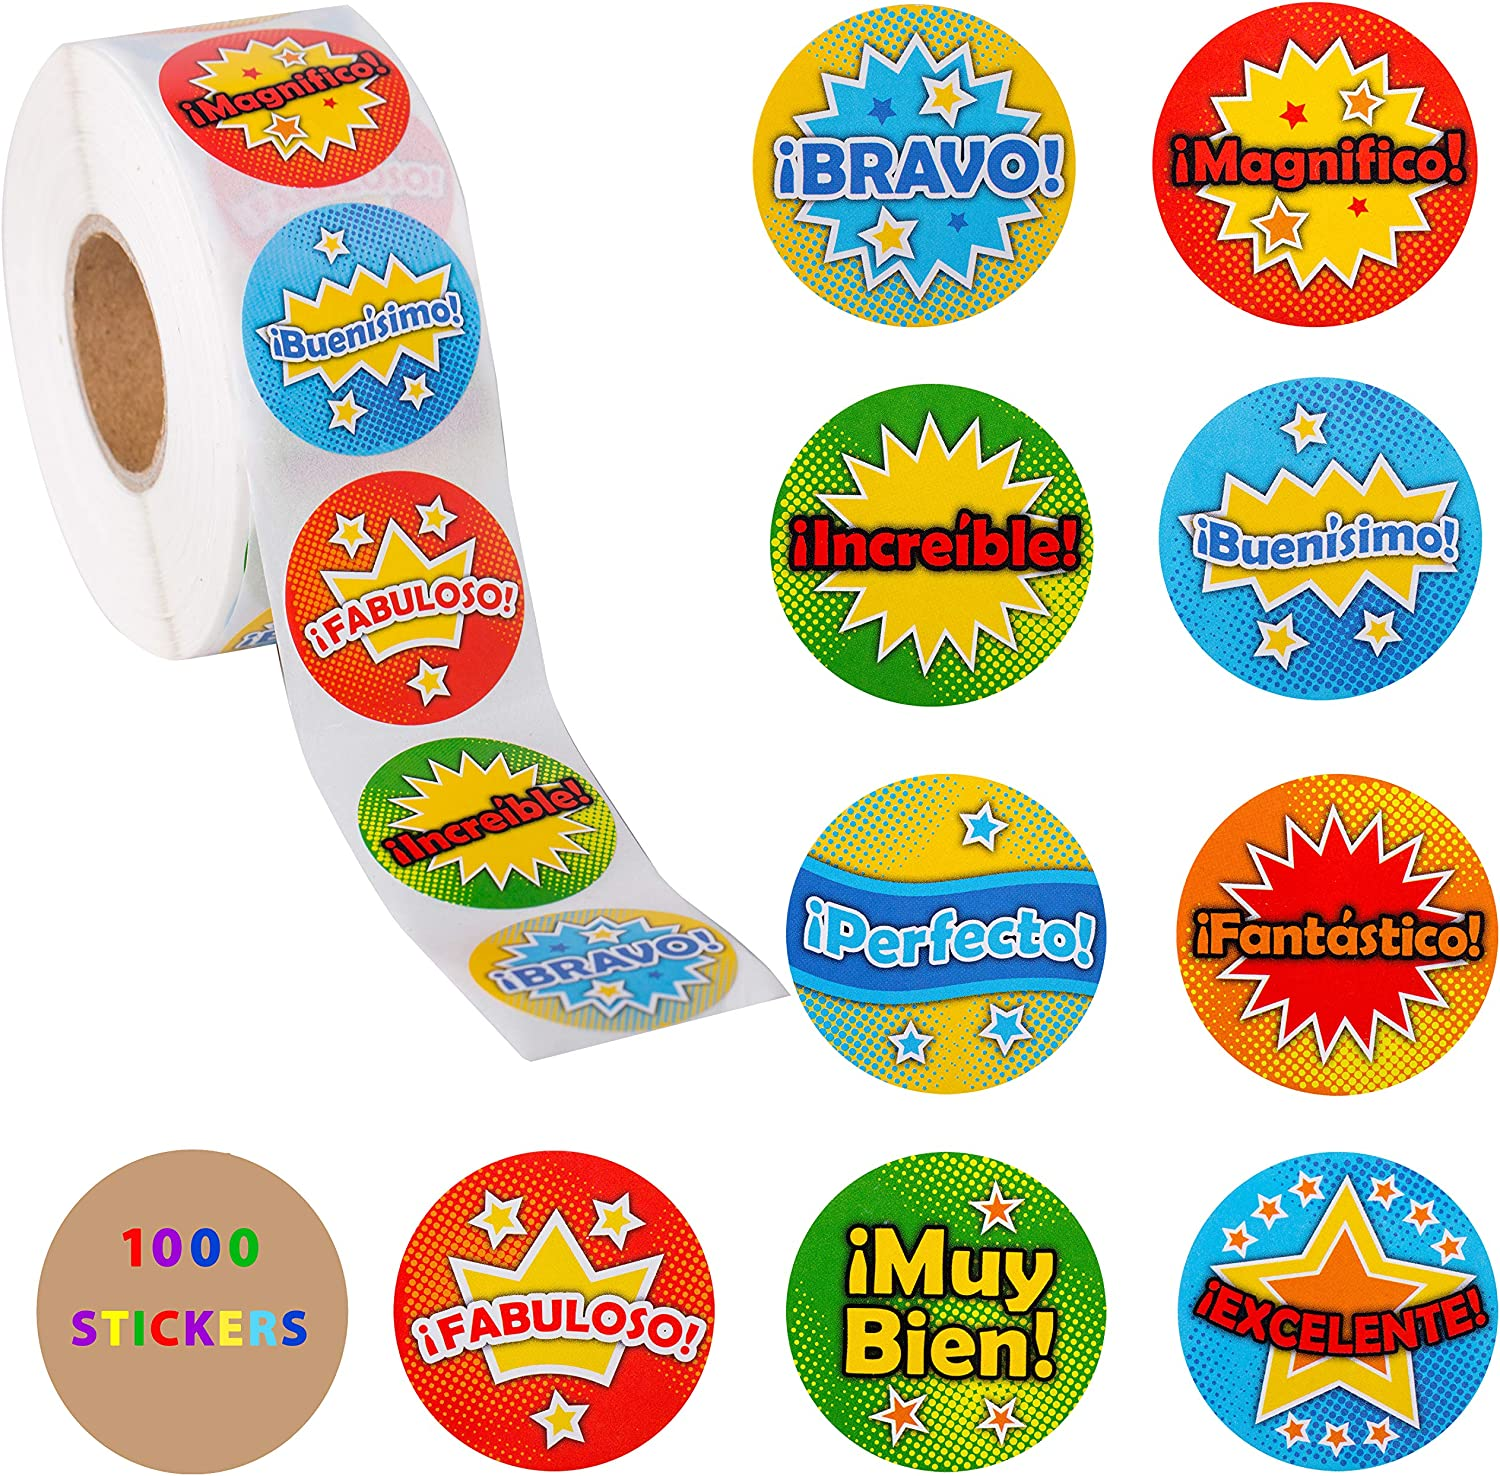 Spanish Stickers - 1000 Stickers For Kids Roll - Teacher Reward Stickers 1.5 Inch – Spanish Class Stickers - Back to School Classroom Supplies Motivation Stickers For Students – Behavior Stickers 1000